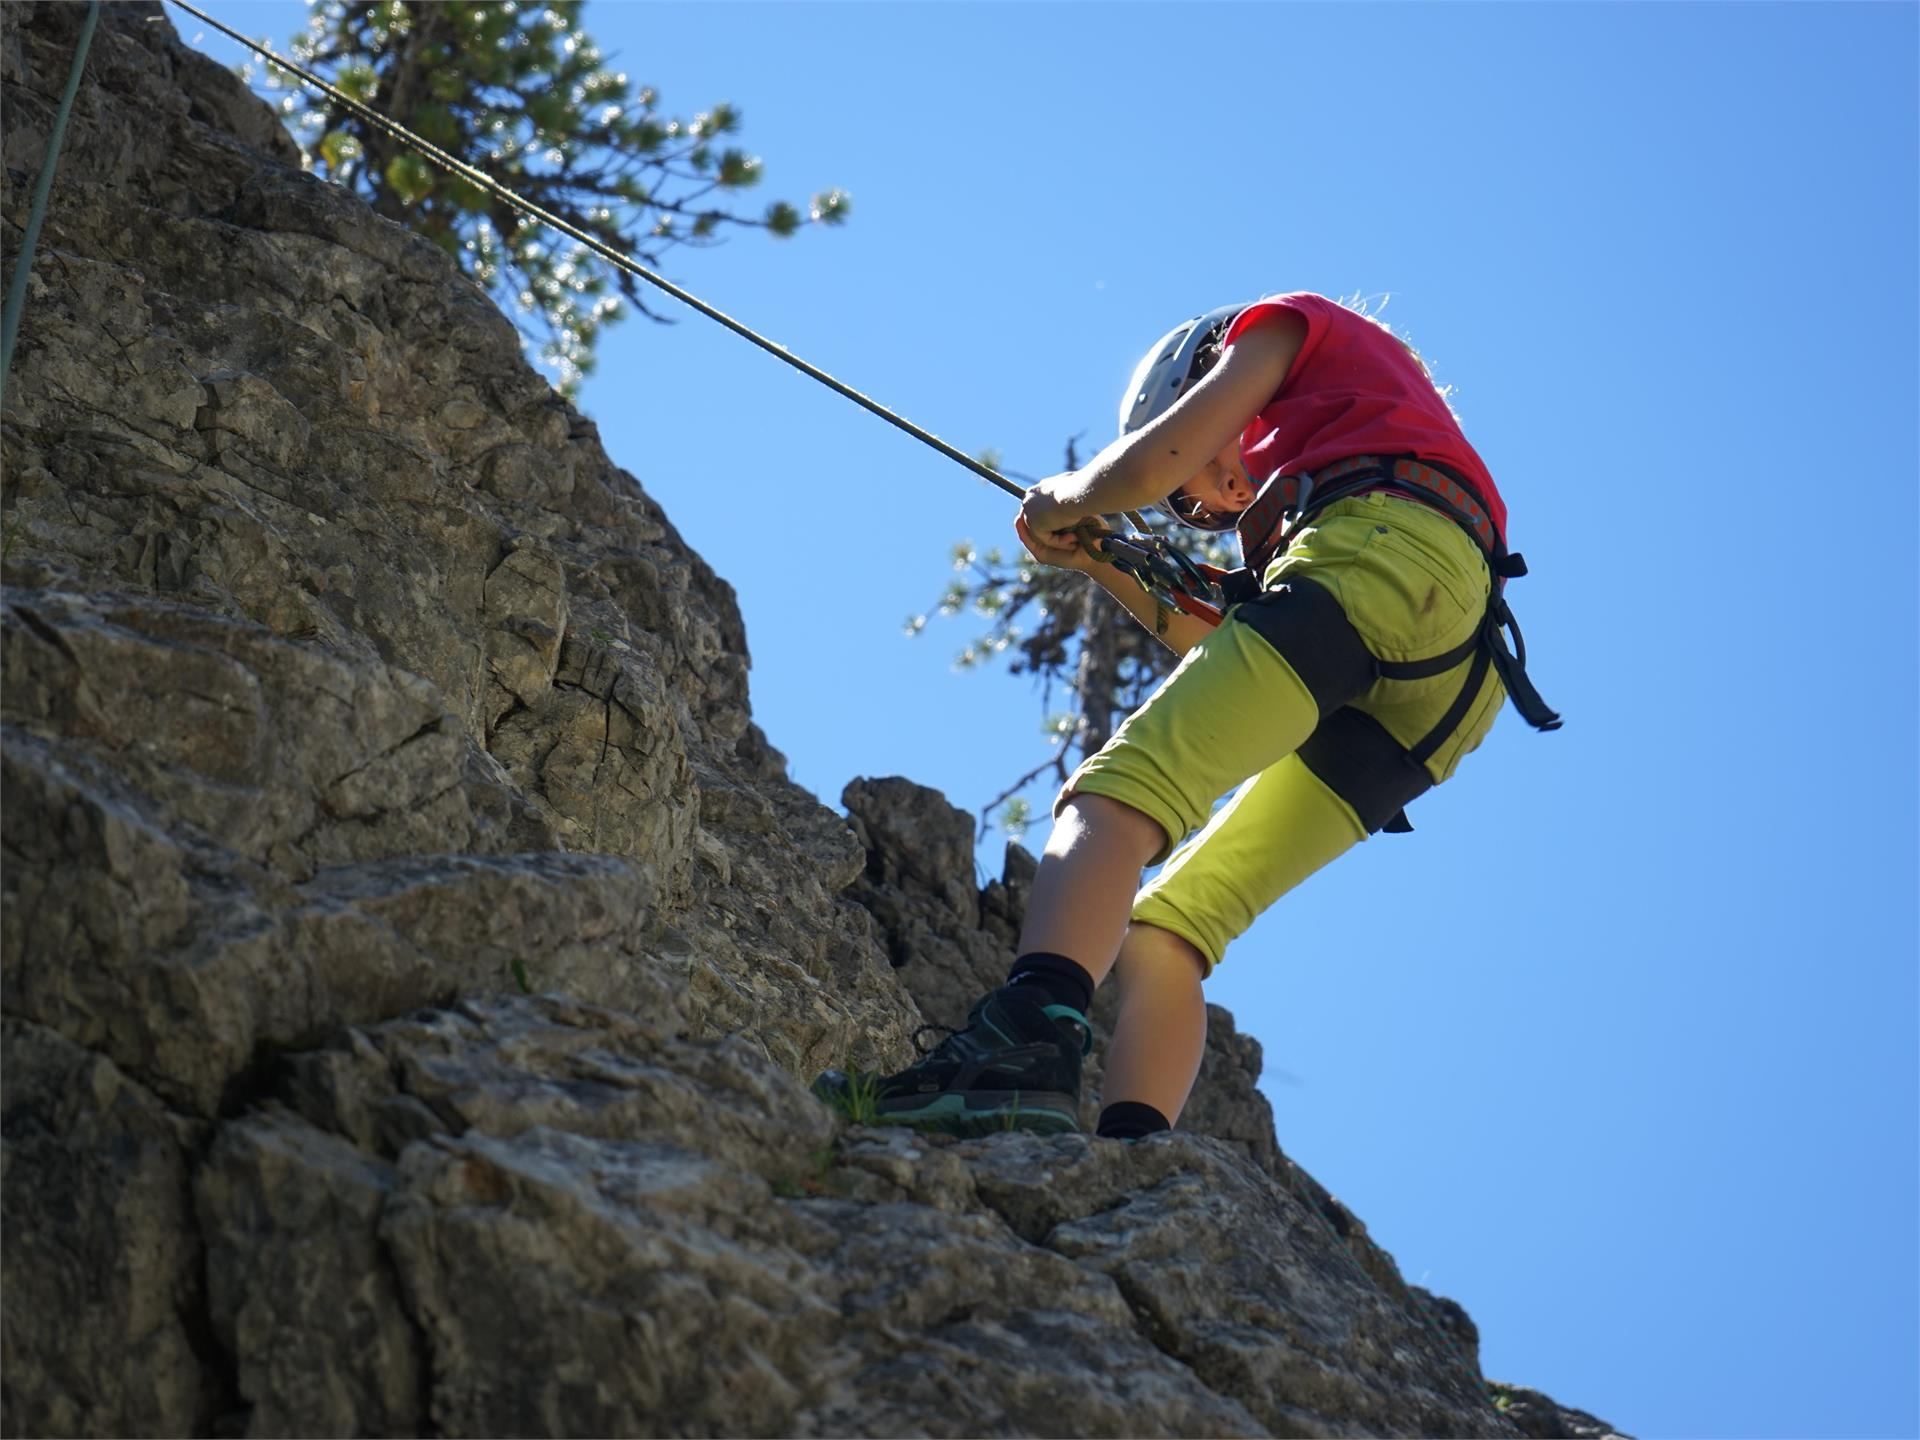 Climbing for childreen